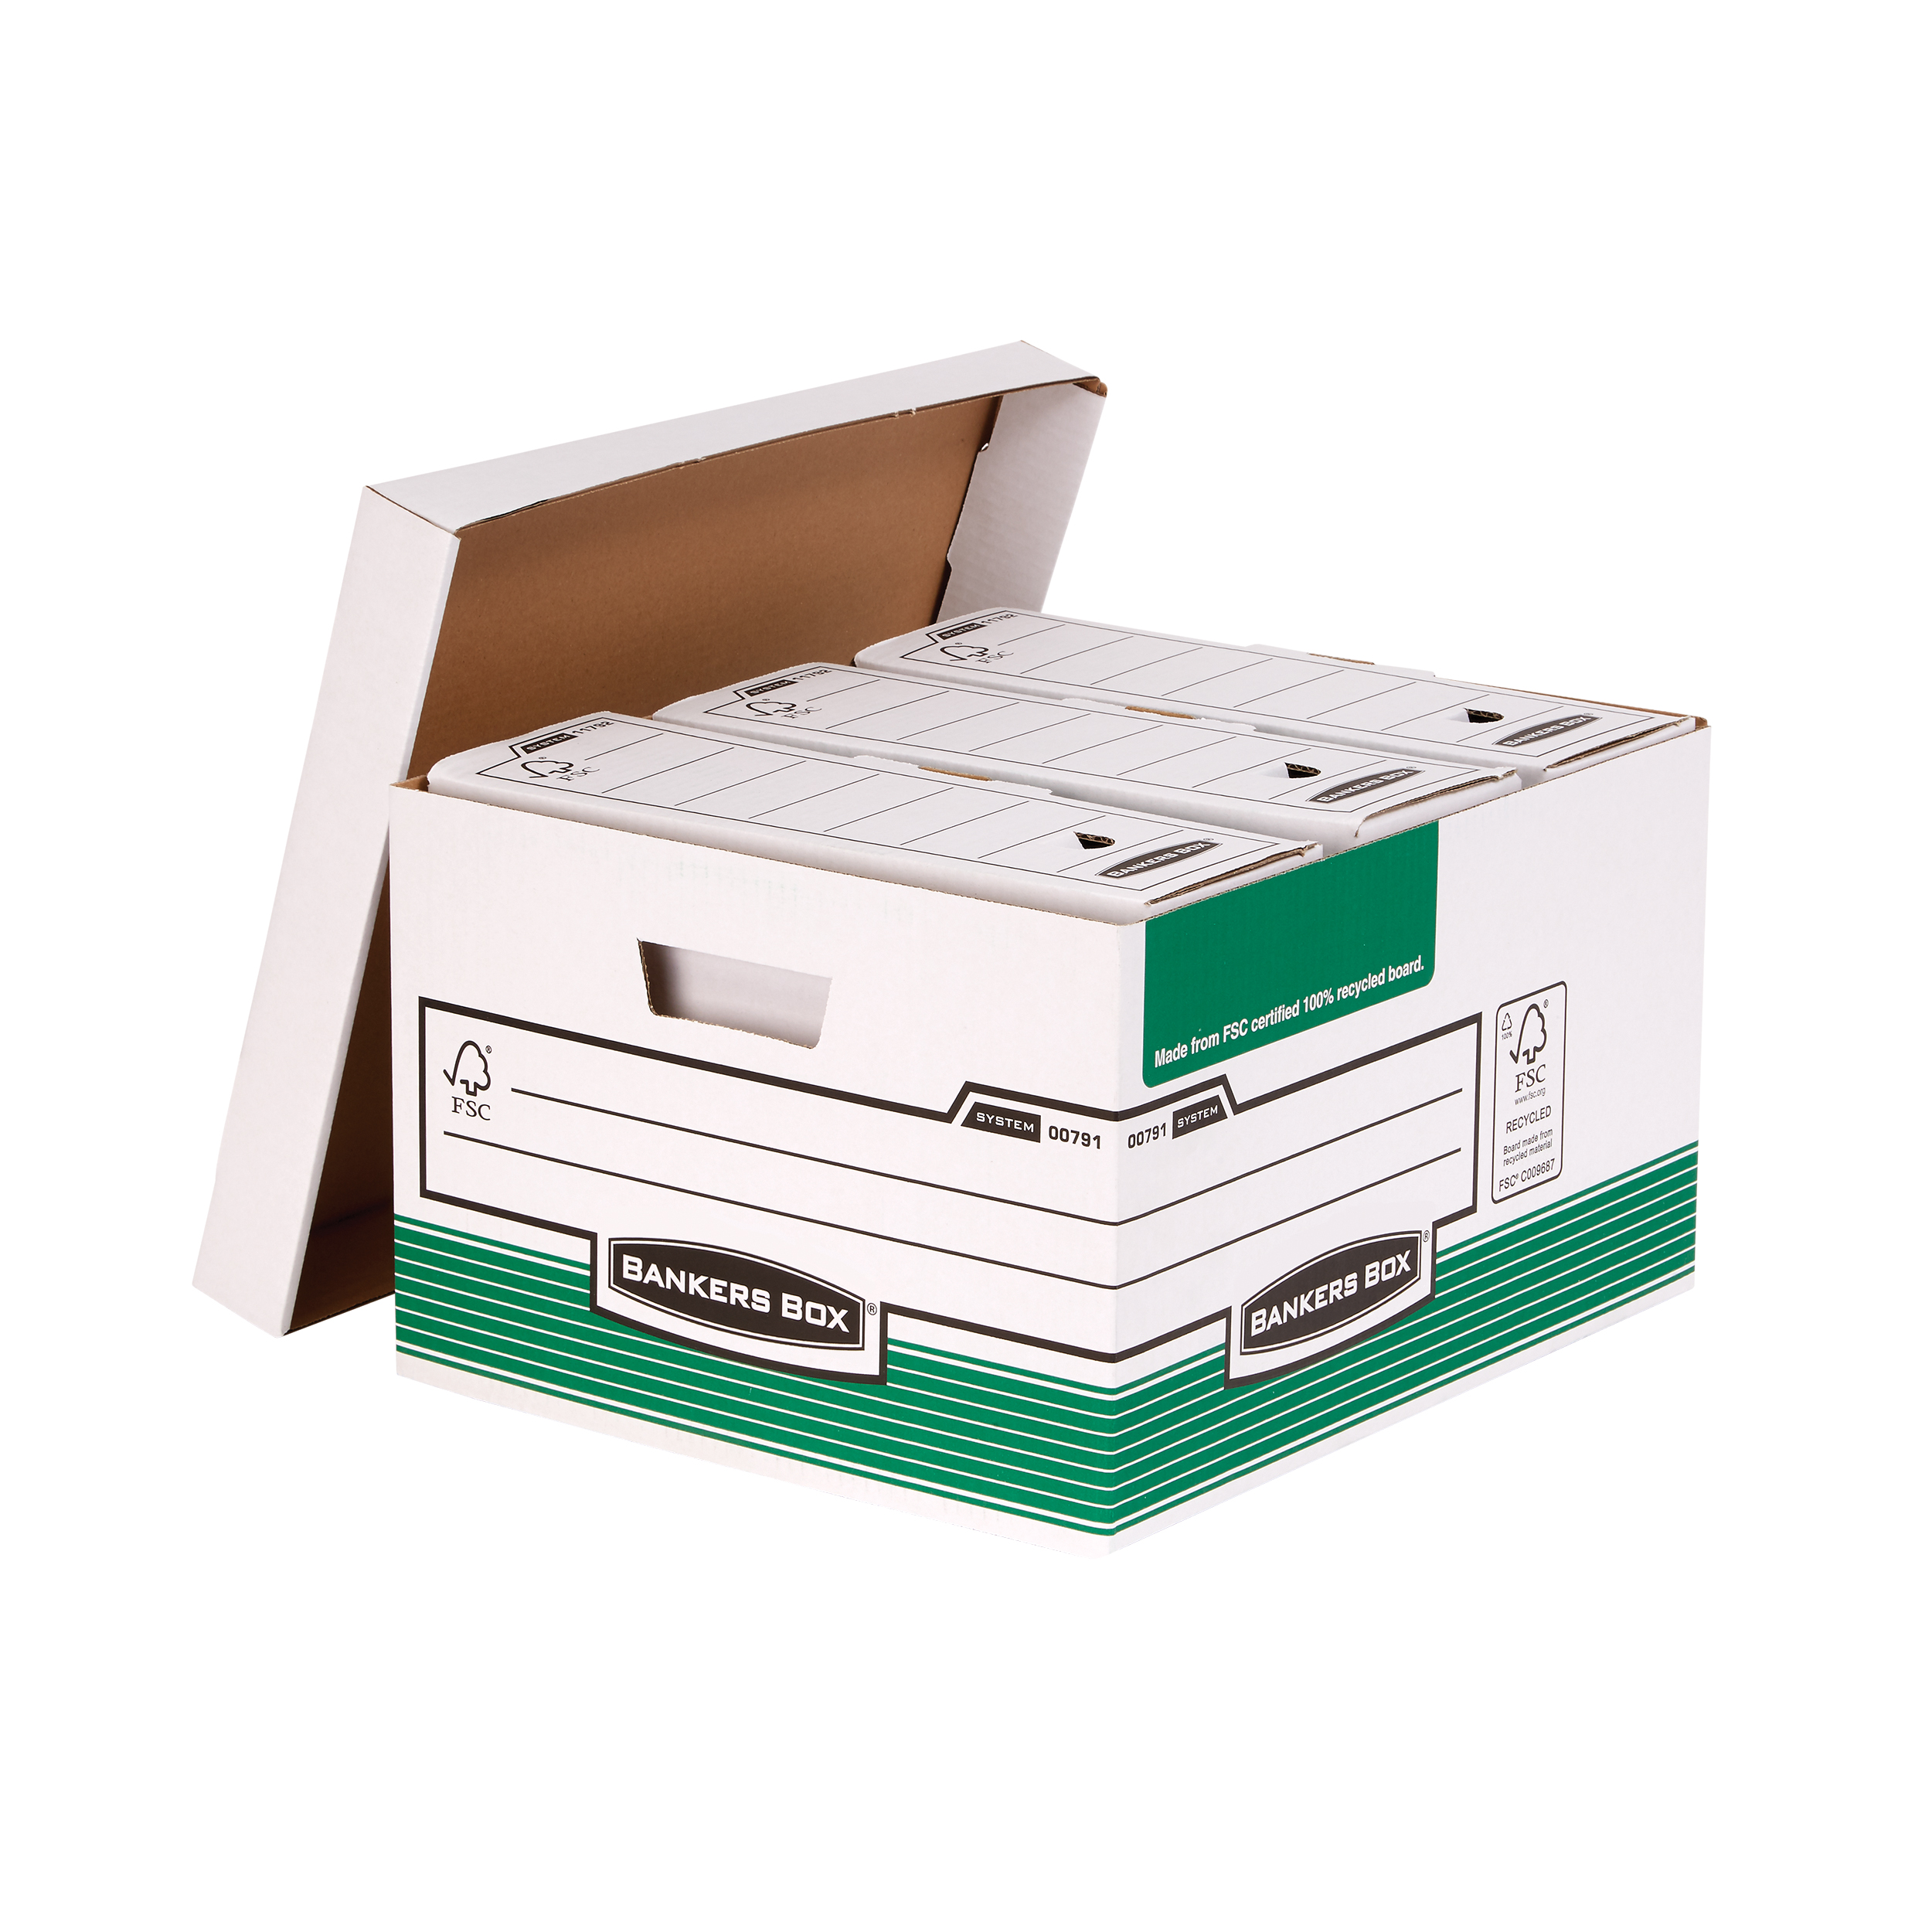 Storage Boxes Bankers Box by Fellowes System Storage Box Foolscap White & Green FSC Ref 00791 [Pack 10]